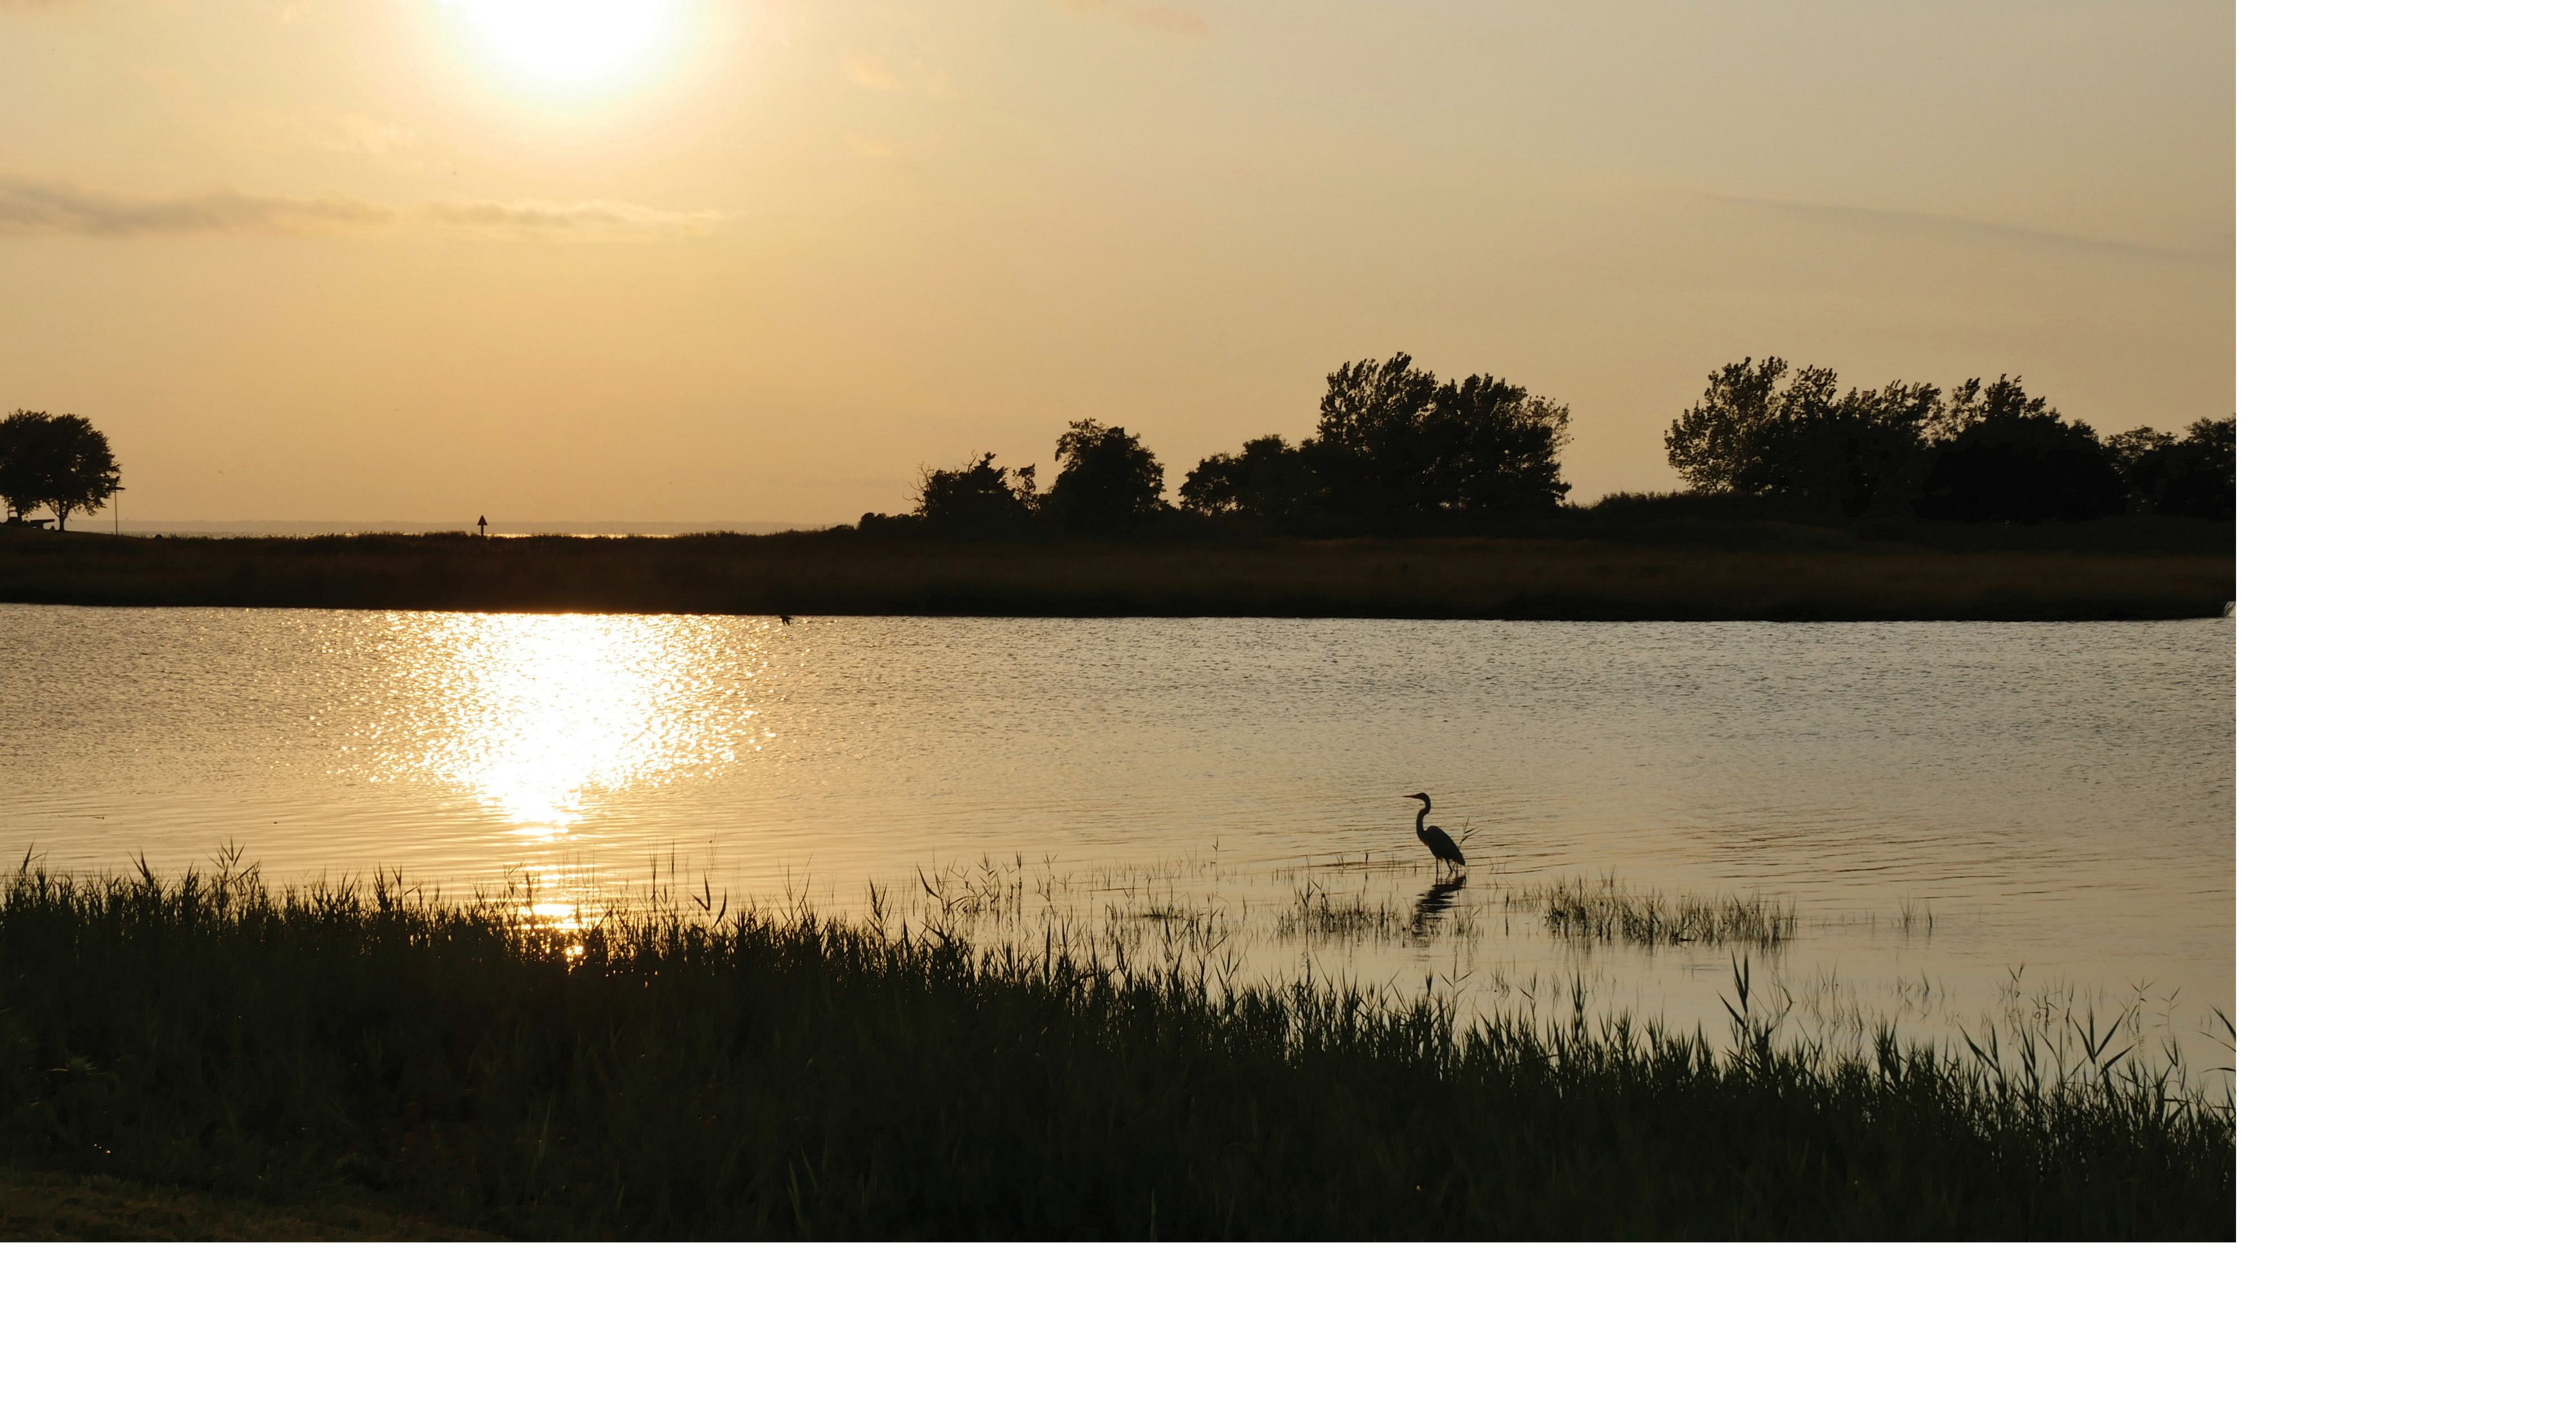 A great blue heron hunts for fish on the Chesapeake Bay.